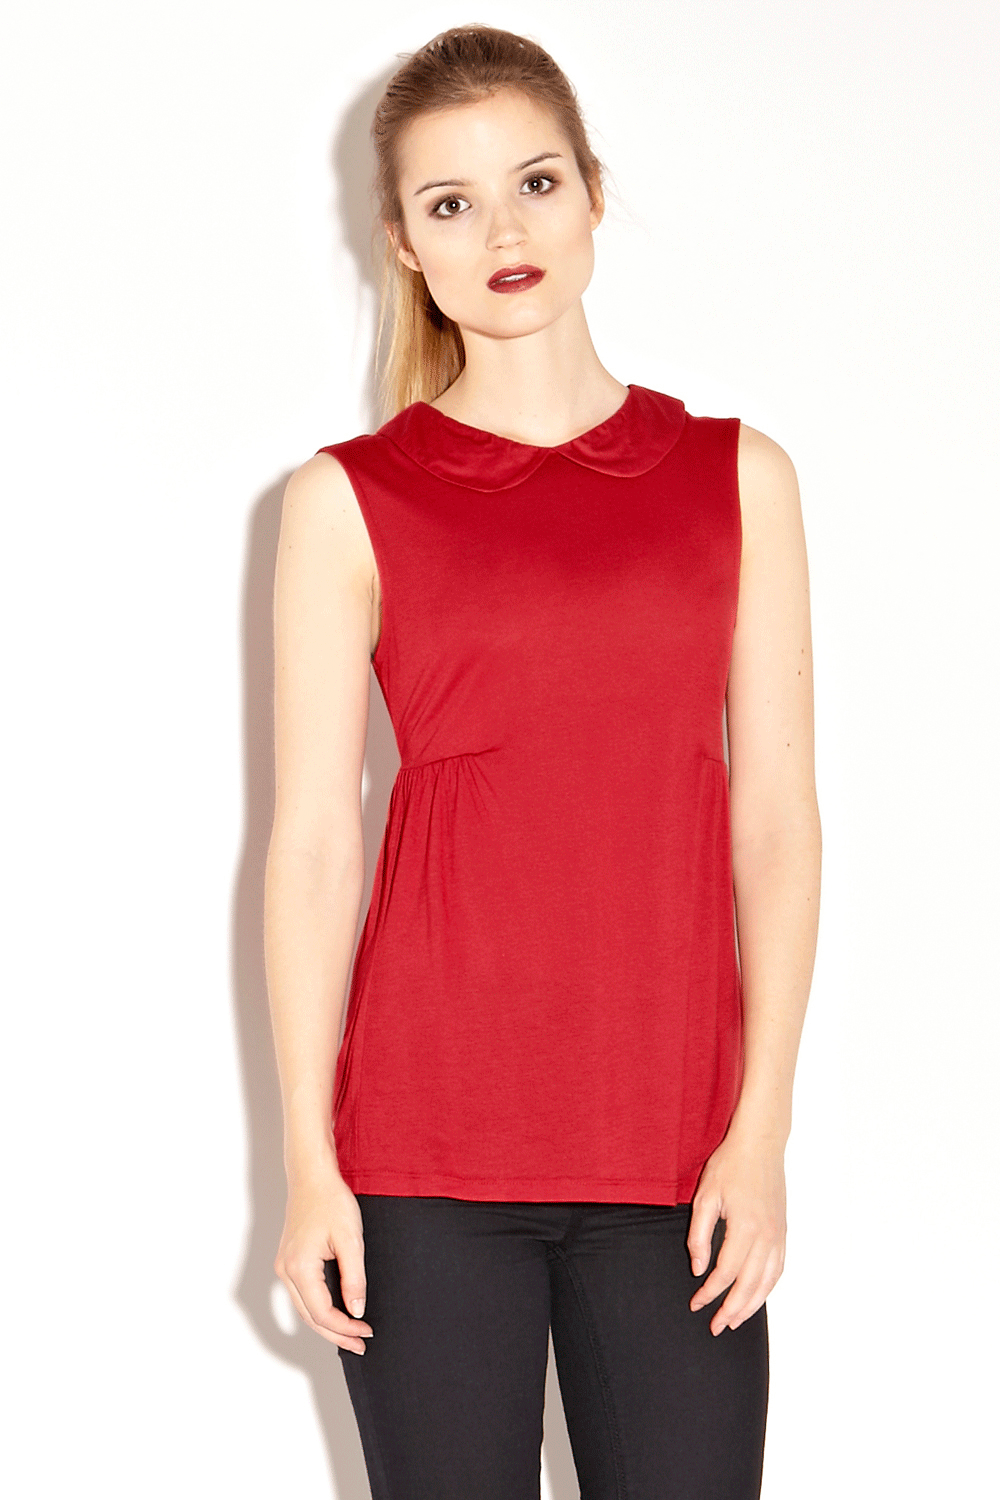 Warehouse Definitives |  BRIGHT RED Peter Pan Shell Top | Fashion Clothing | Warehouse Fashions